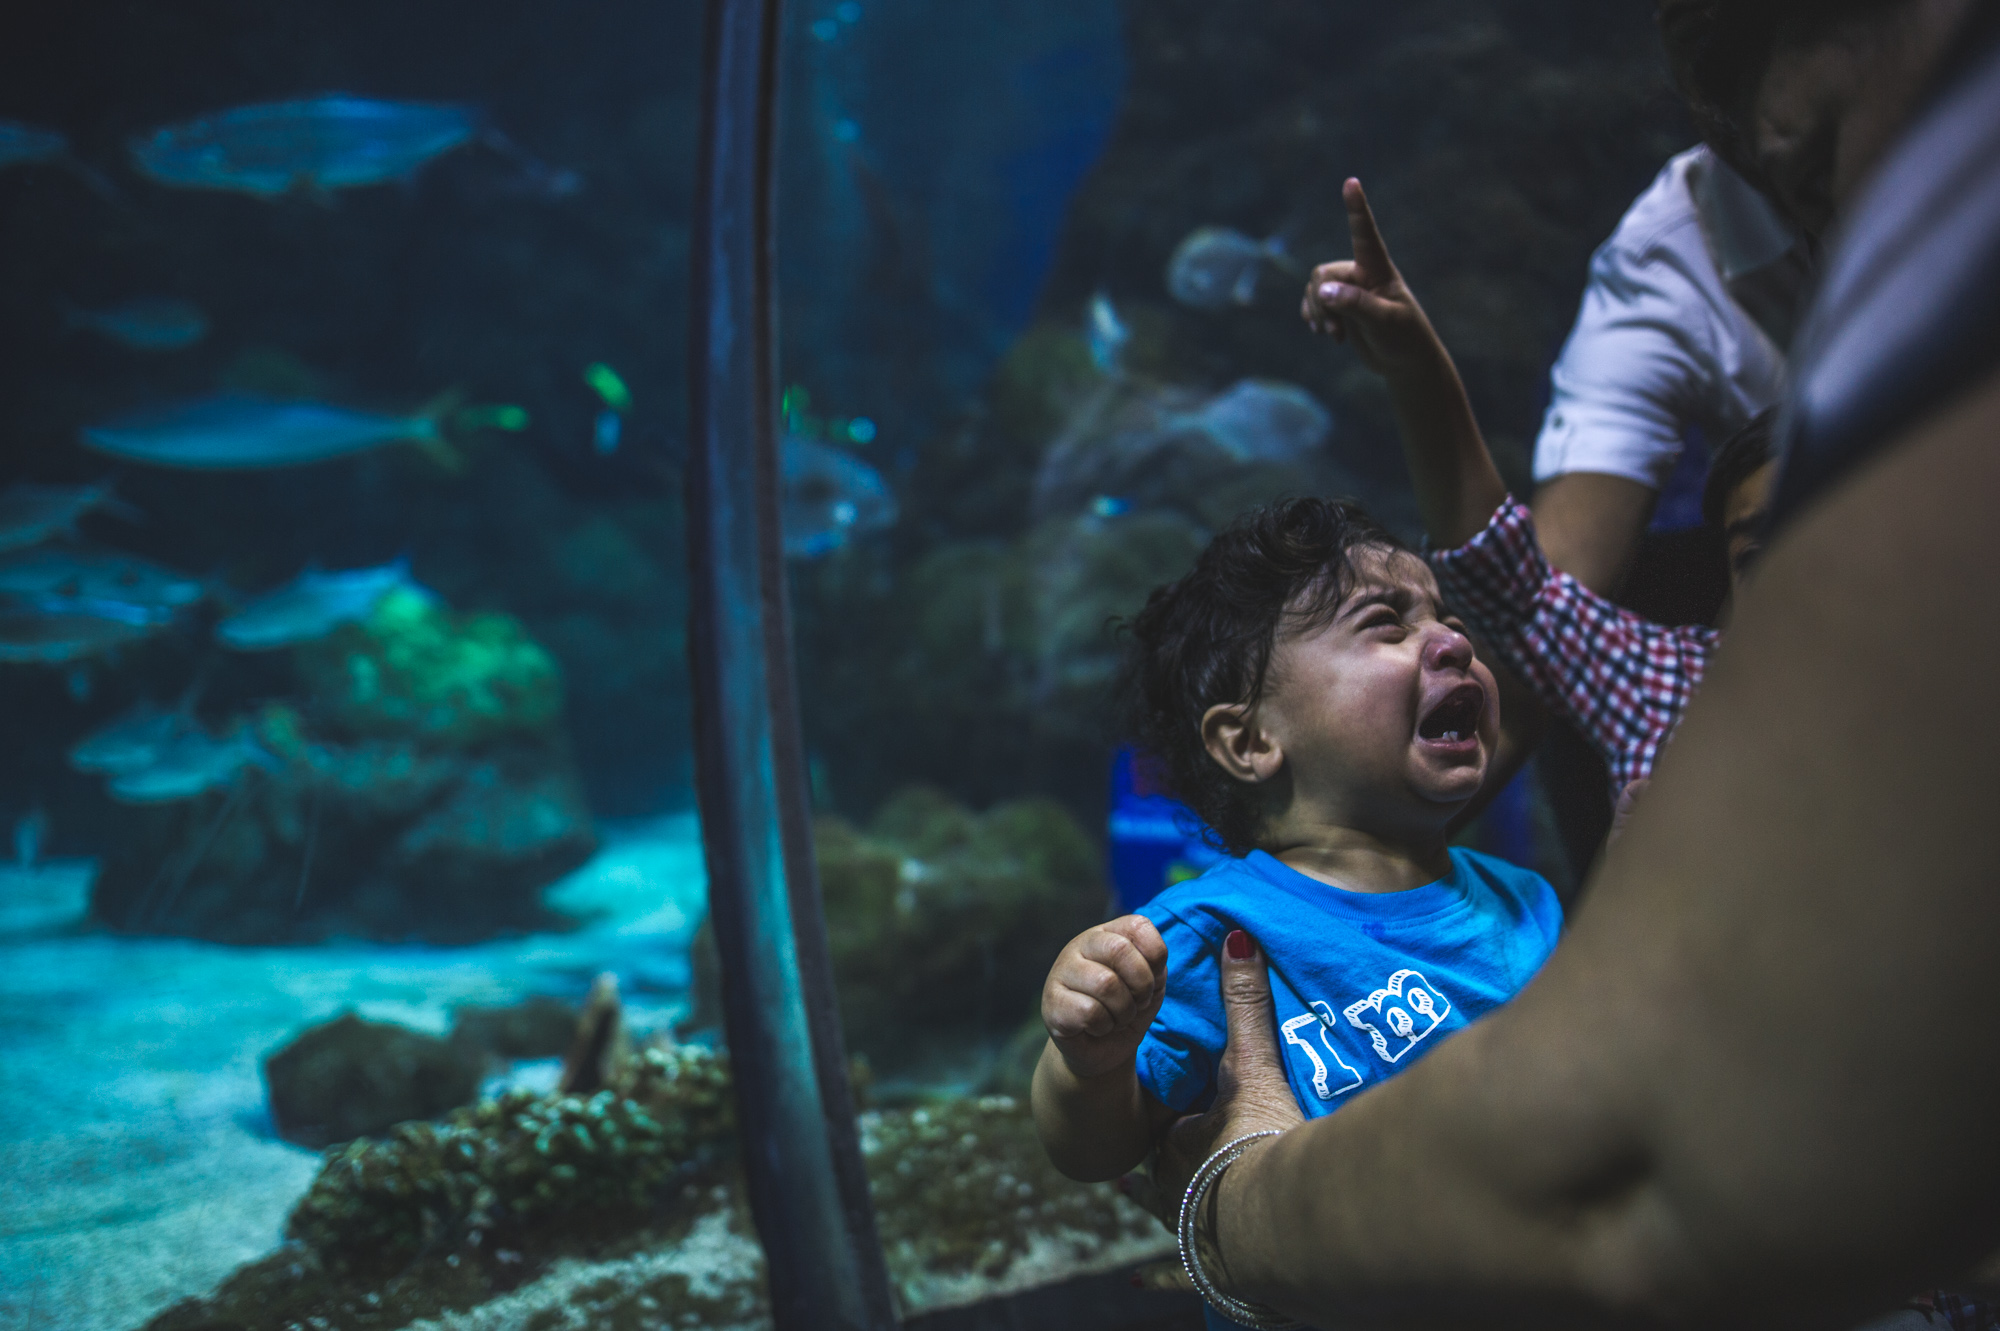 Little boy crying in front of a fish tank at the Denver Aquarium while a little boy behind him points up